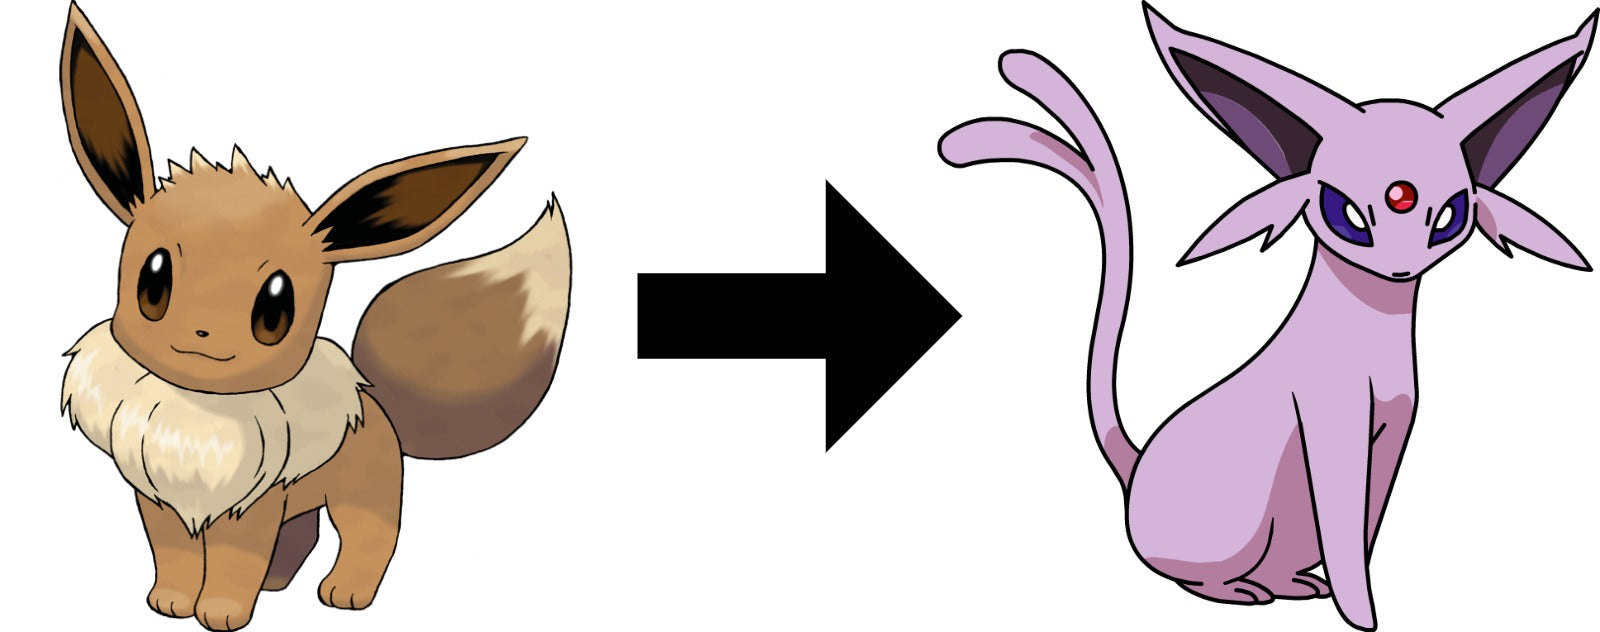 How to Evolve Eevee into Espeon in pokemon sword and shield